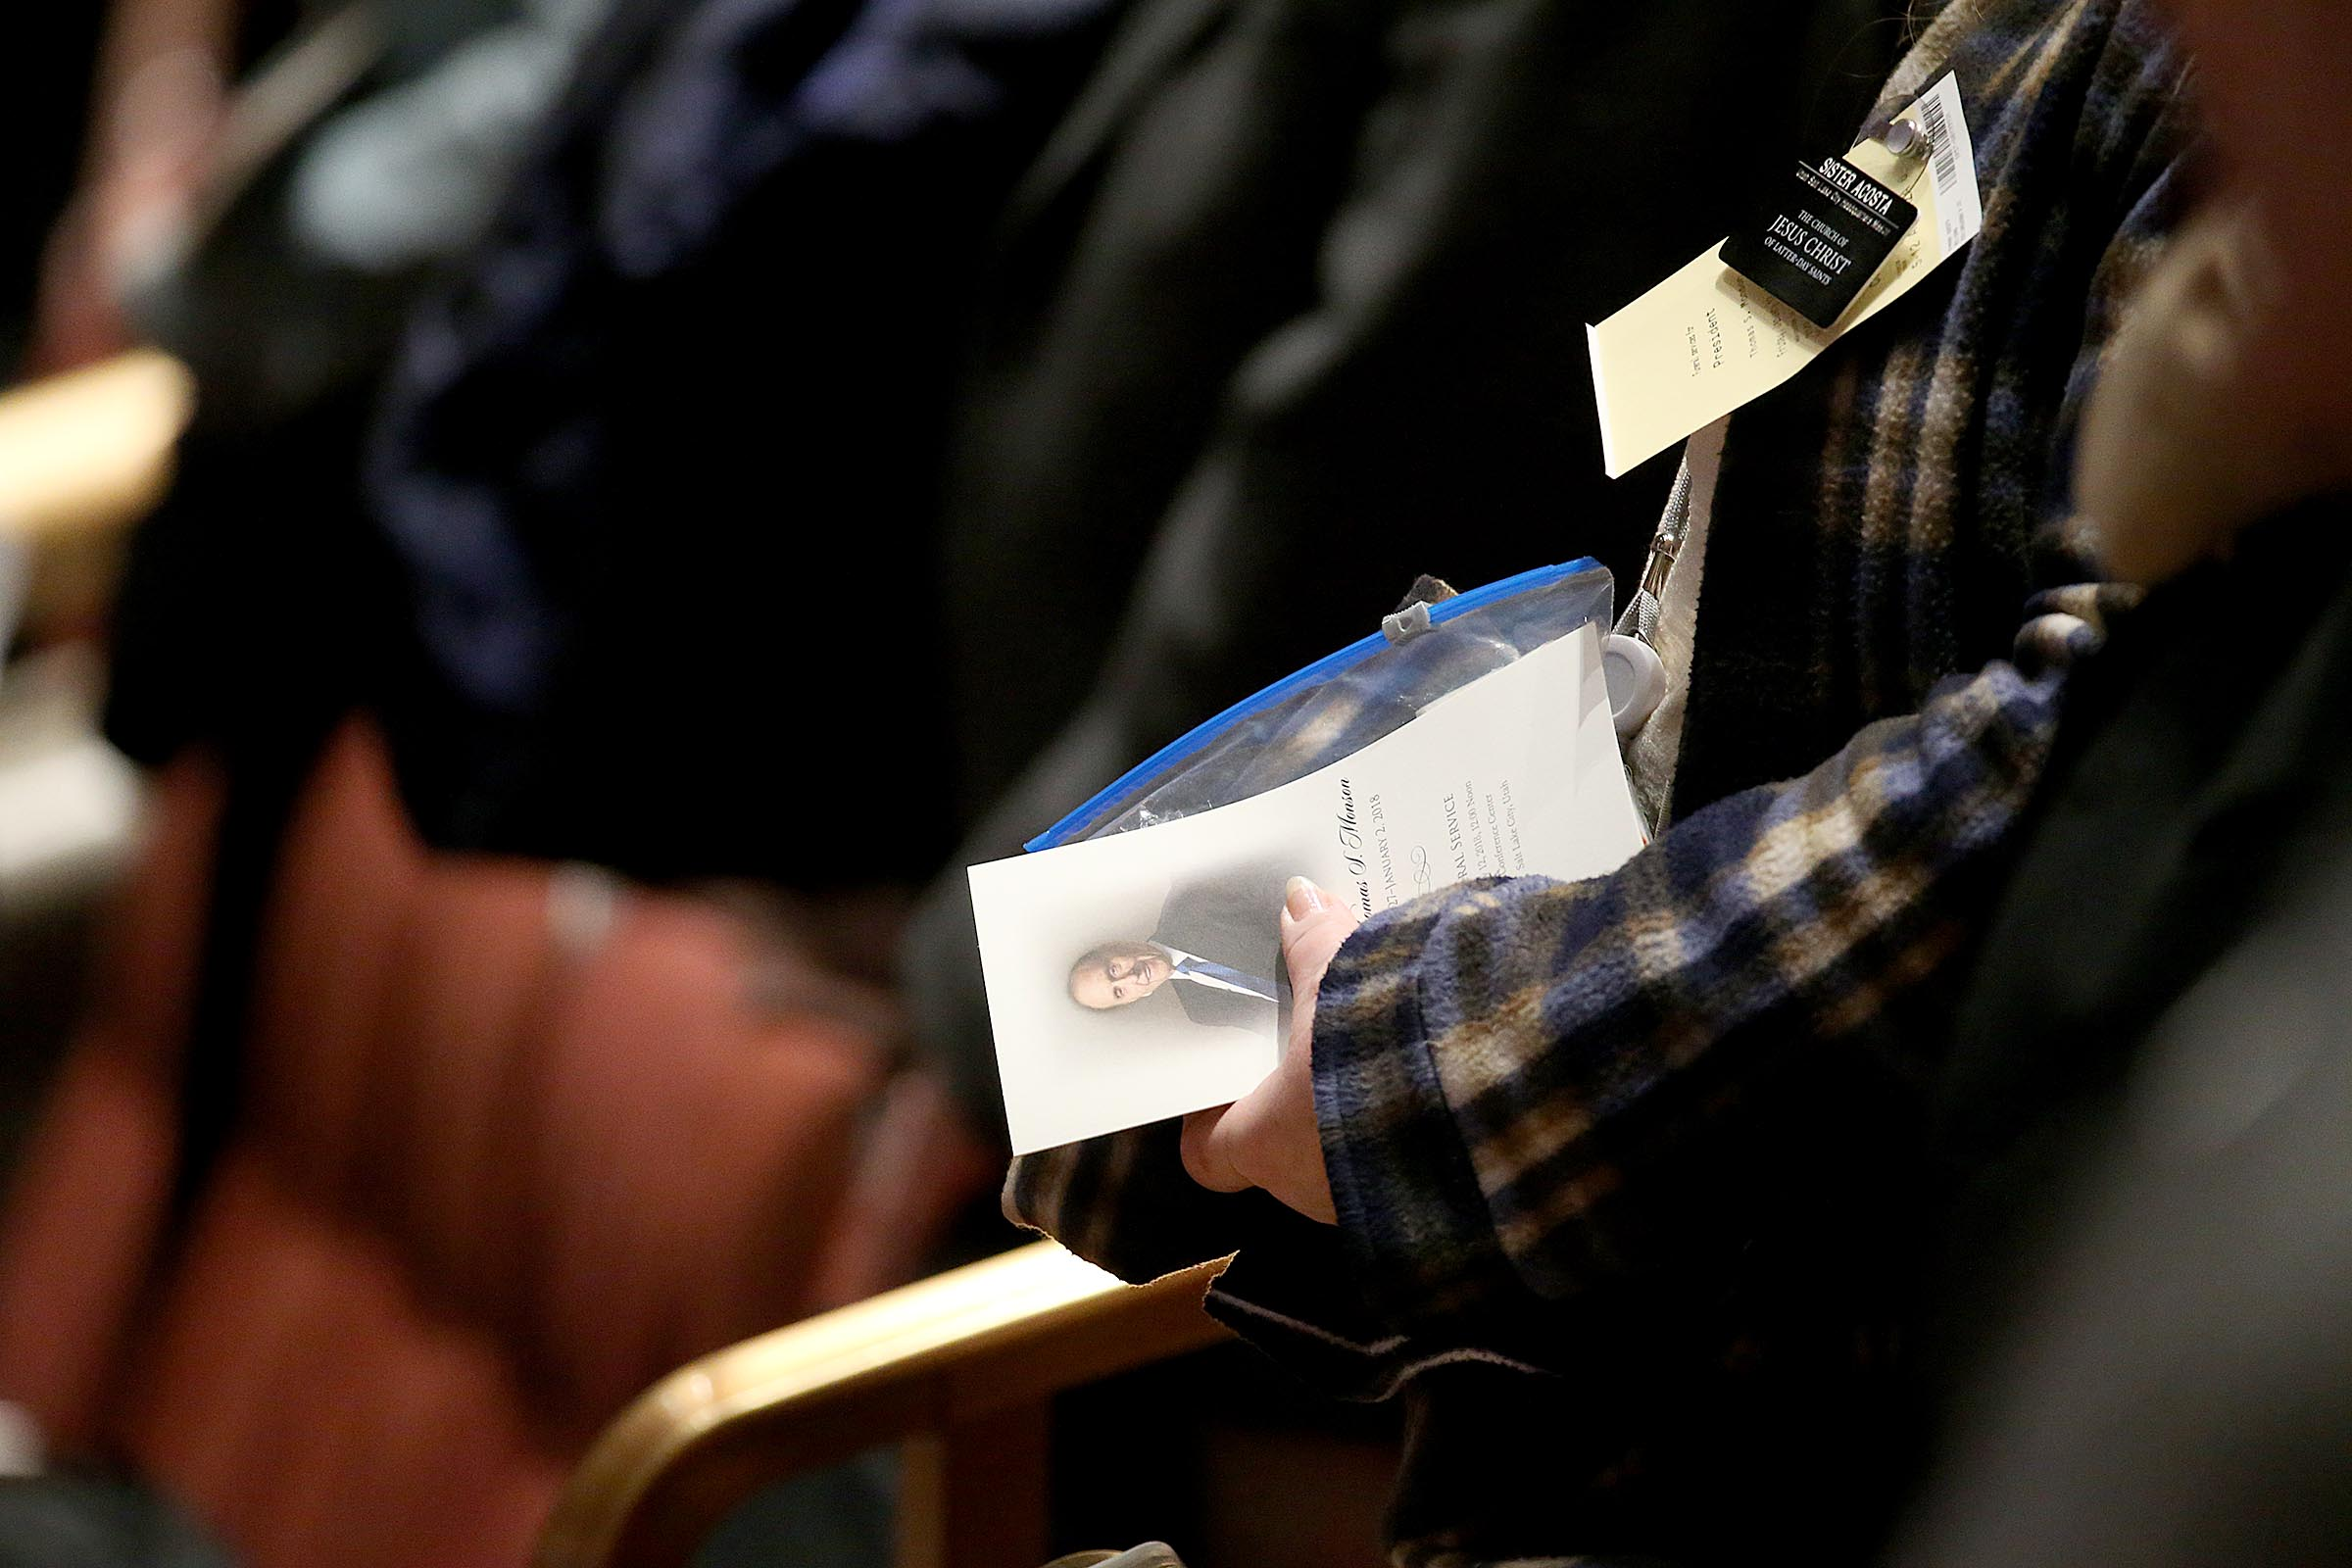 A mourner holds a program while waiting for Church President Thomas S. Monson's funeral to begin at the Conference Center in Salt Lake City on Friday, Jan. 12, 2018.